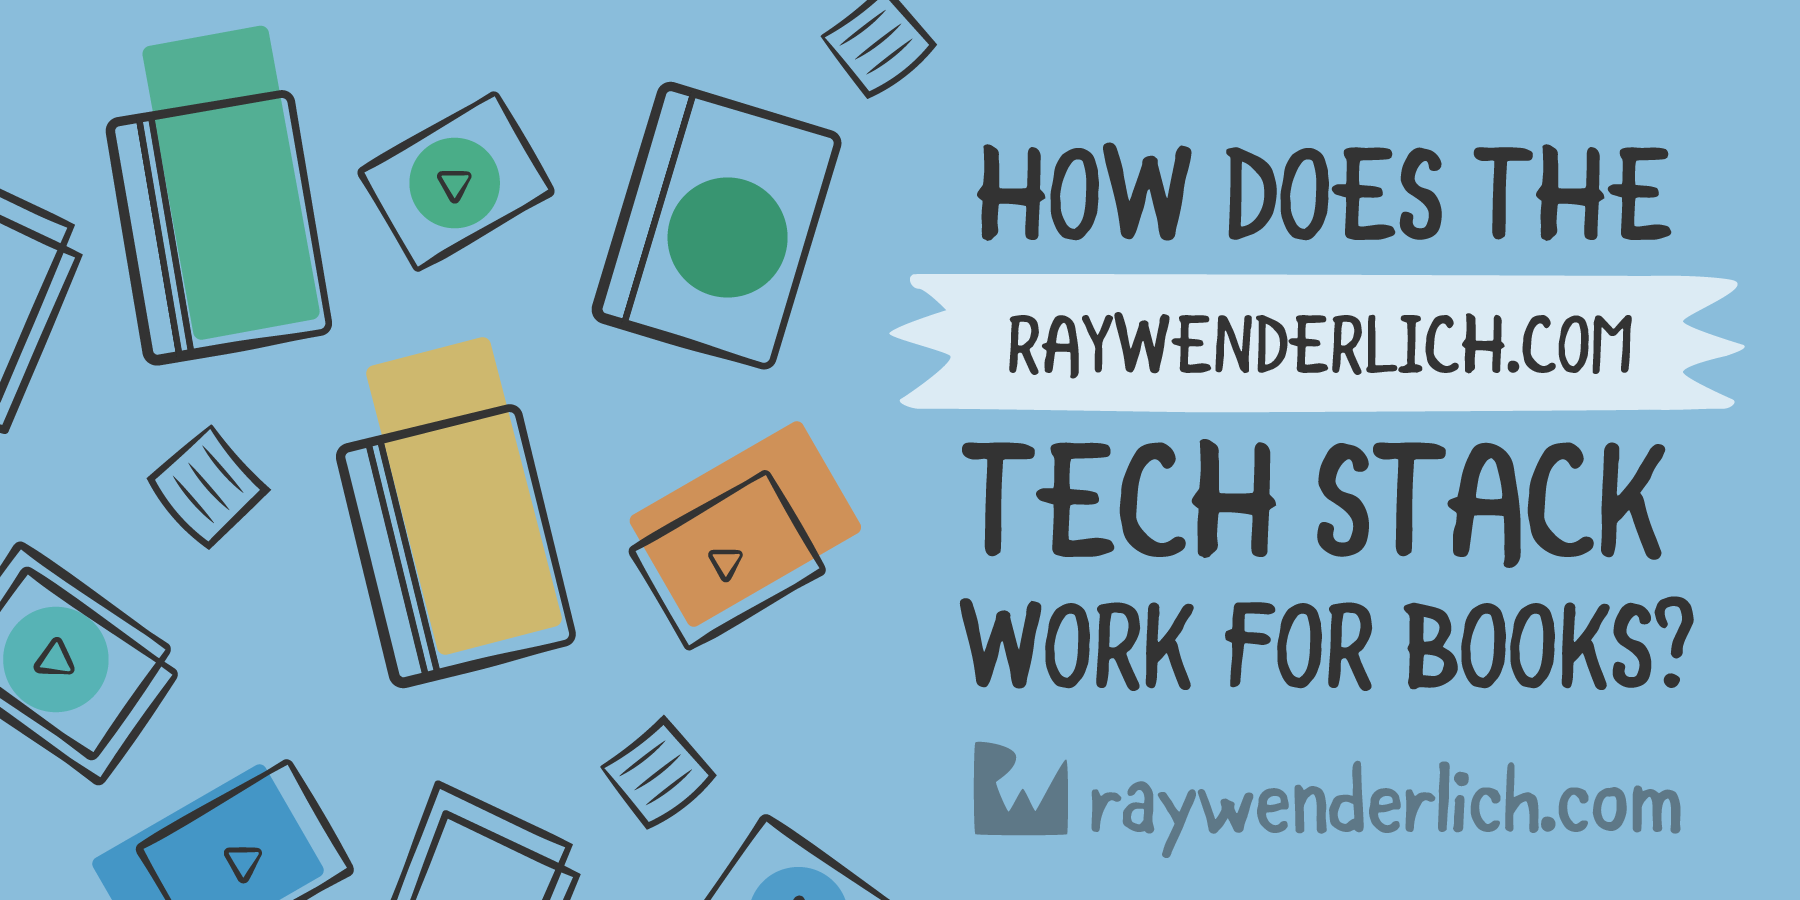 How Does the raywenderlich.com Tech Stack Work for Books? [FREE]